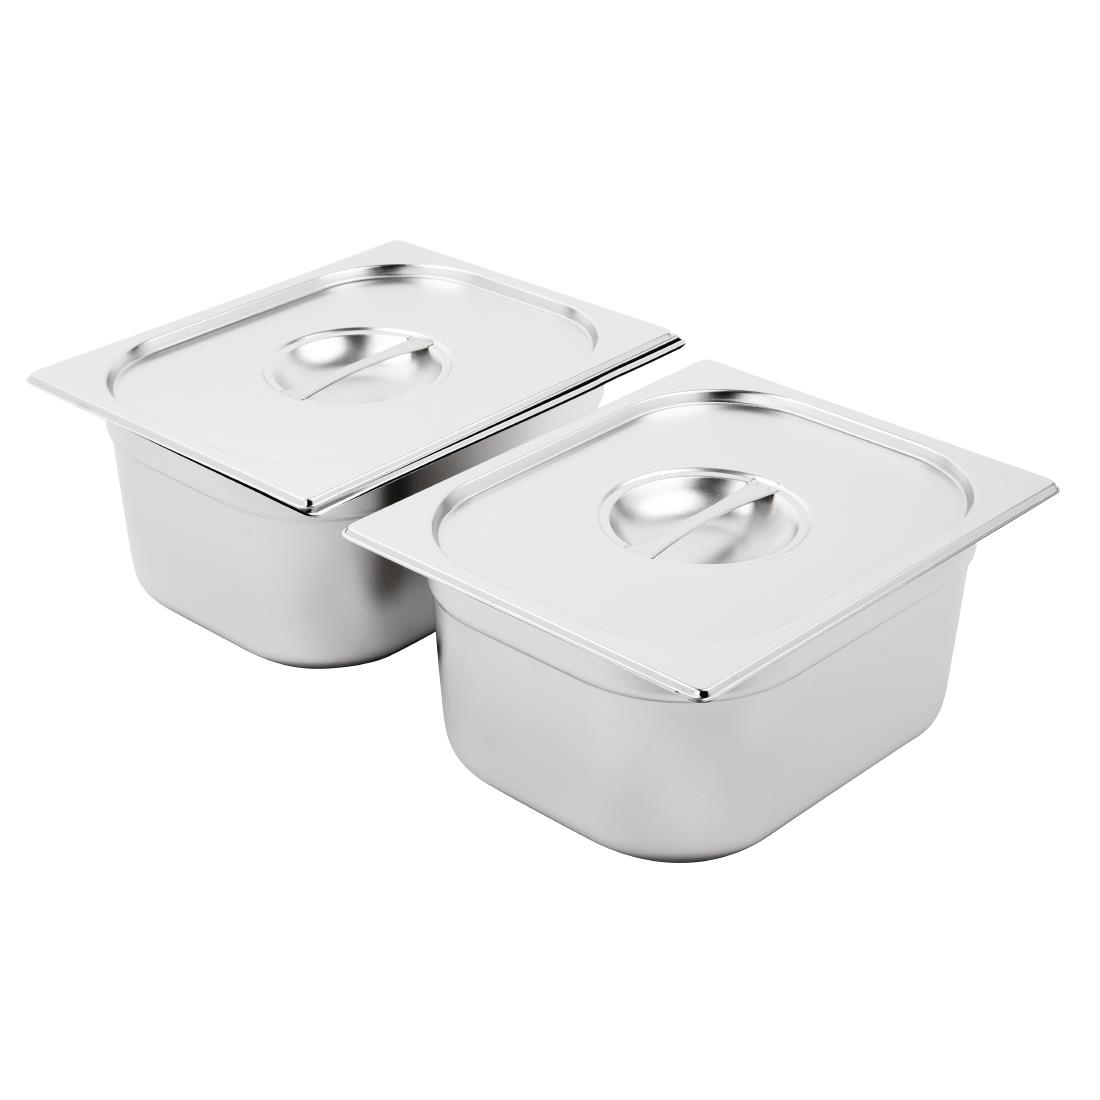 2 x 1//2 GN 150 mm � Set of Gastronorm Pans with Lids in Stainless Steel